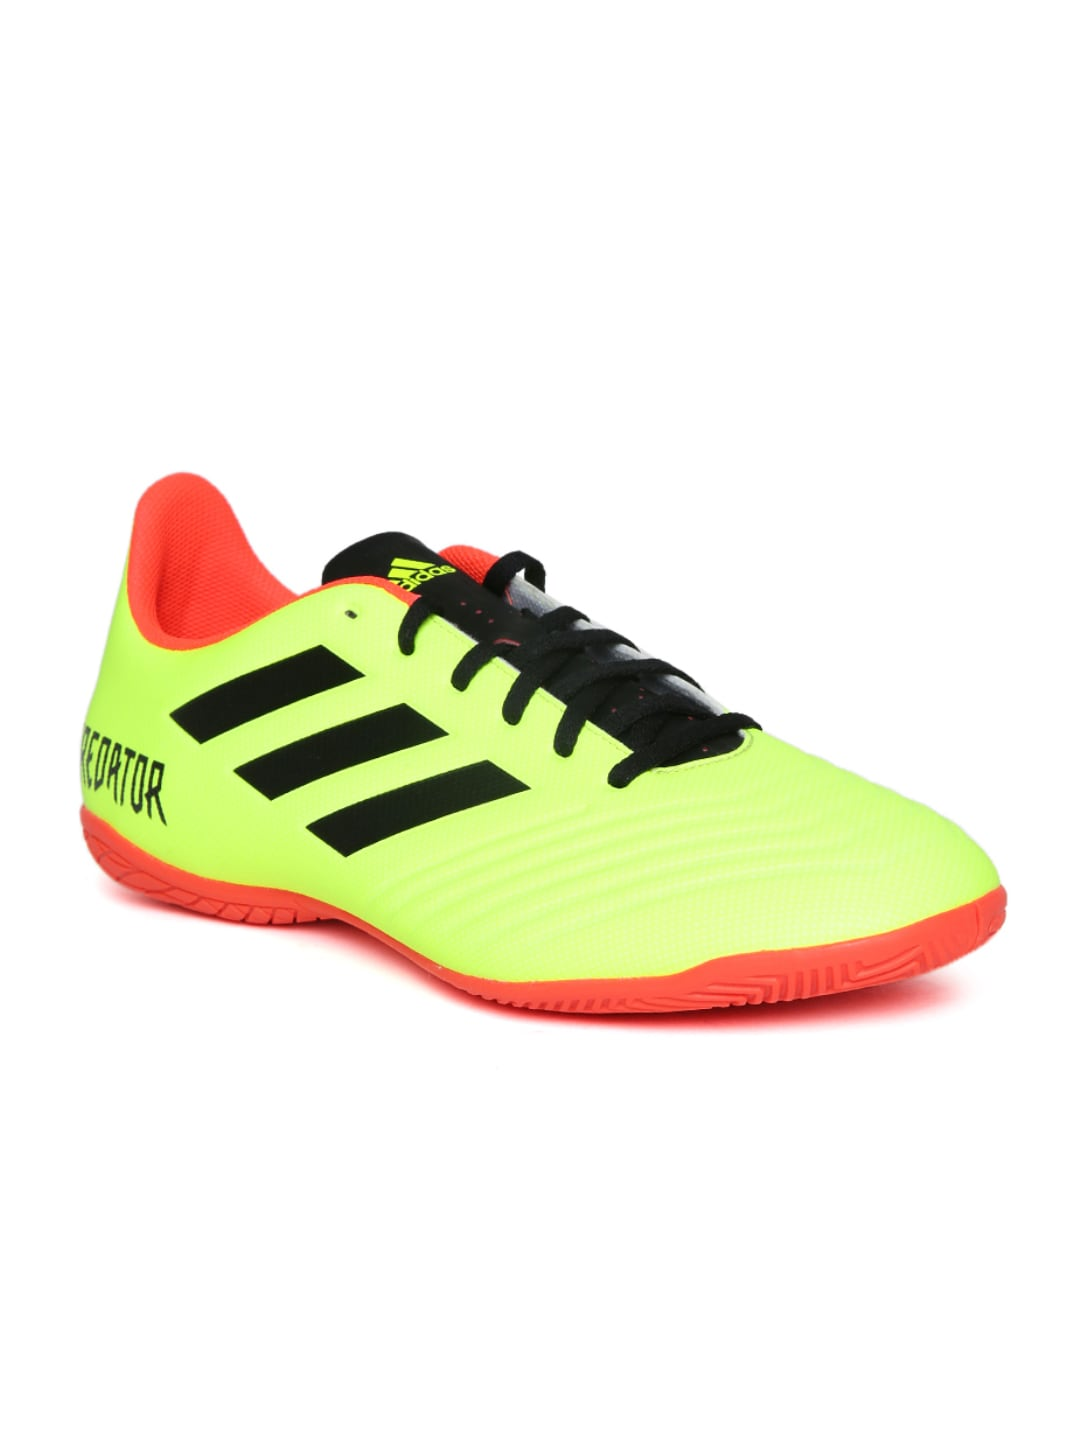 6d3c25e0dd3 Football Shoes - Buy Football Studs Online for Men   Women in India